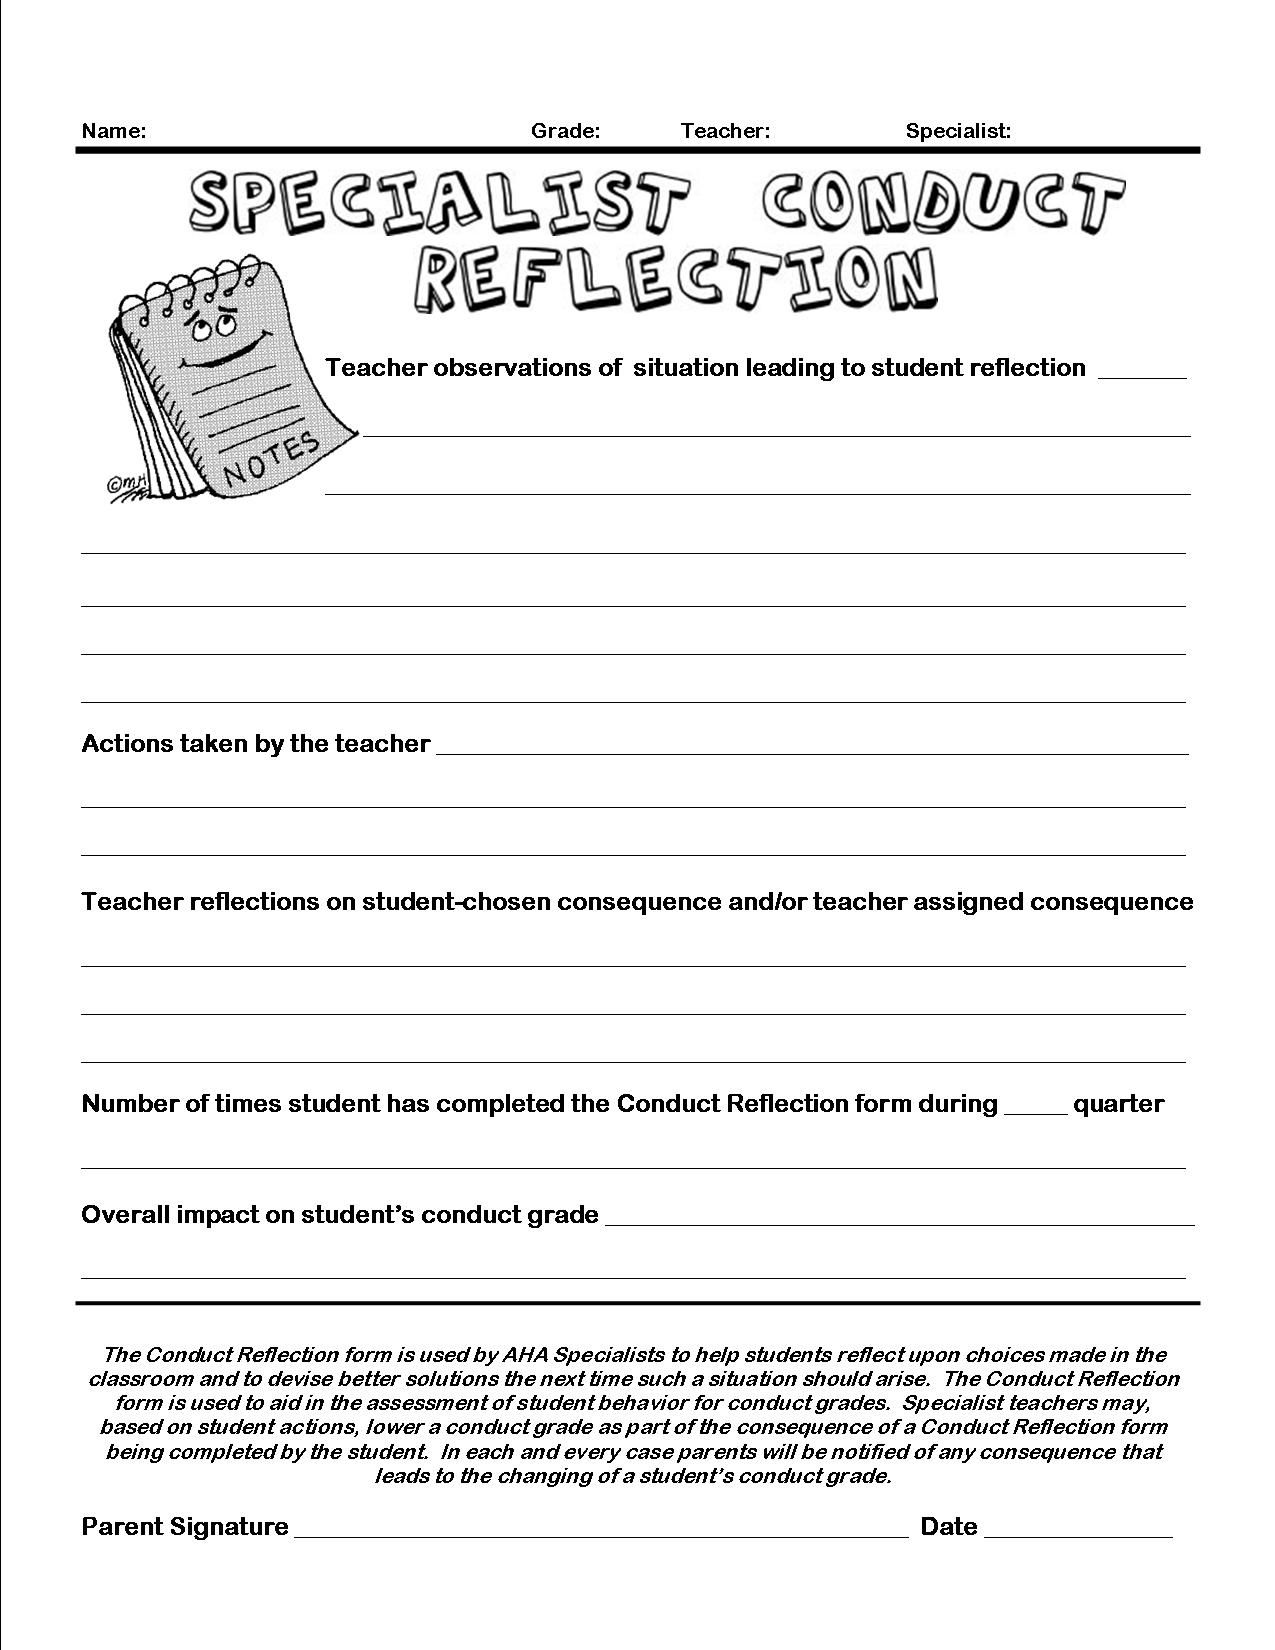 Resource Conduct Reflection Form Education templates